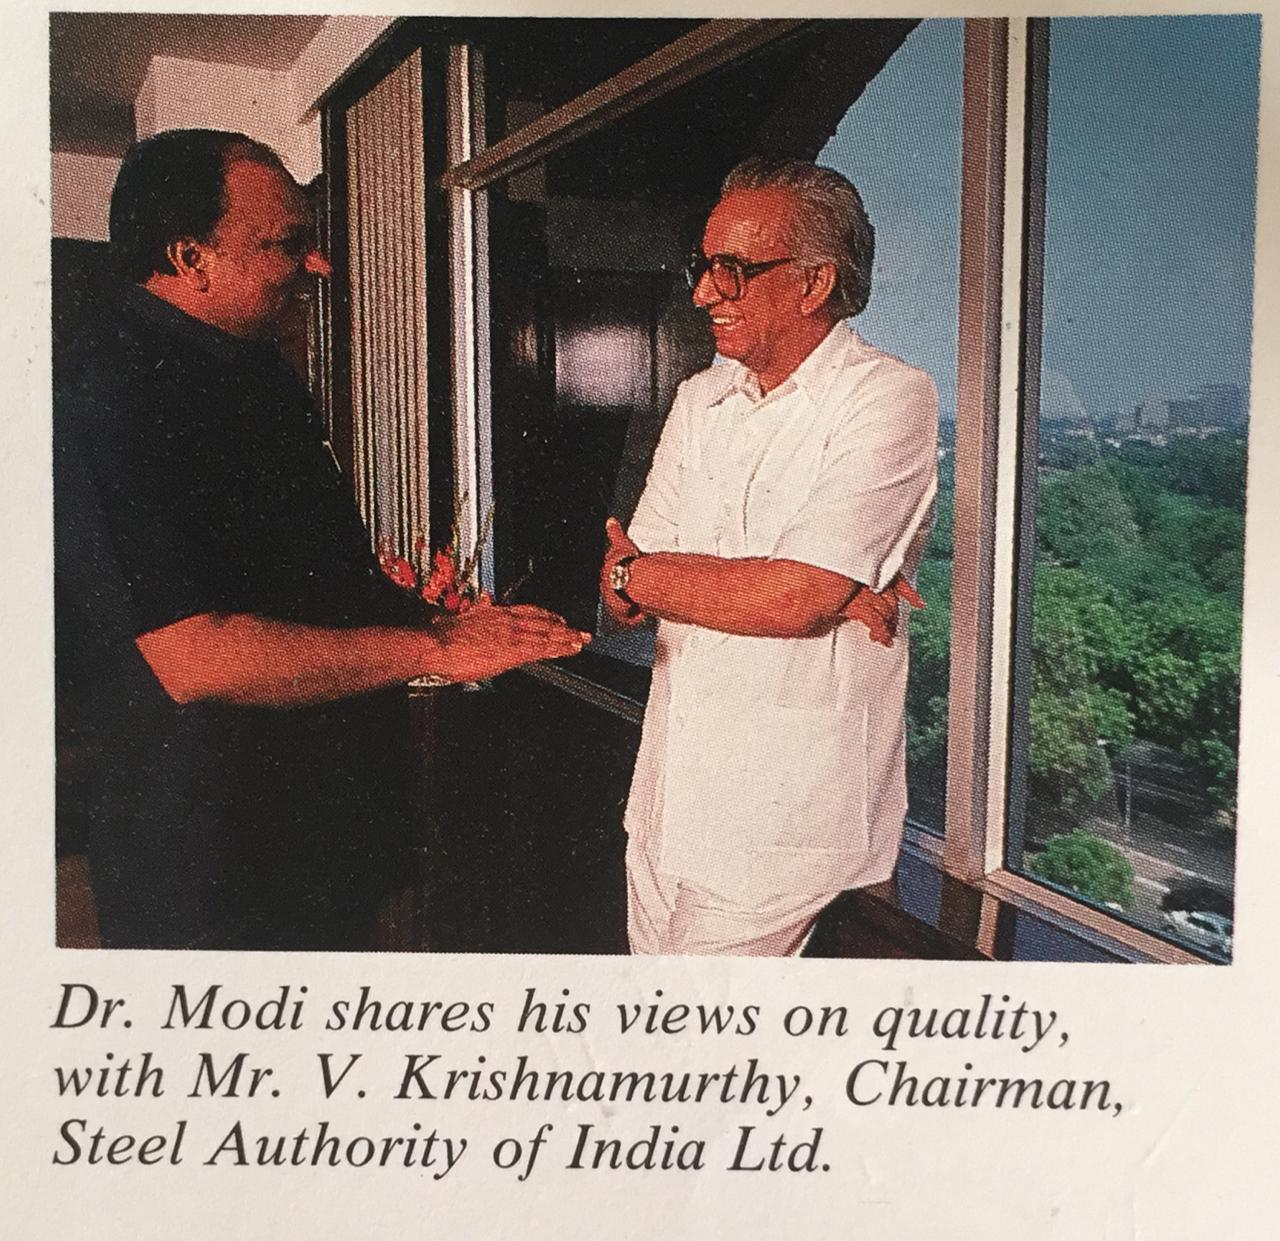 Dr. M with V Krishnamurthy Former Chairman of the Steel Authority of India